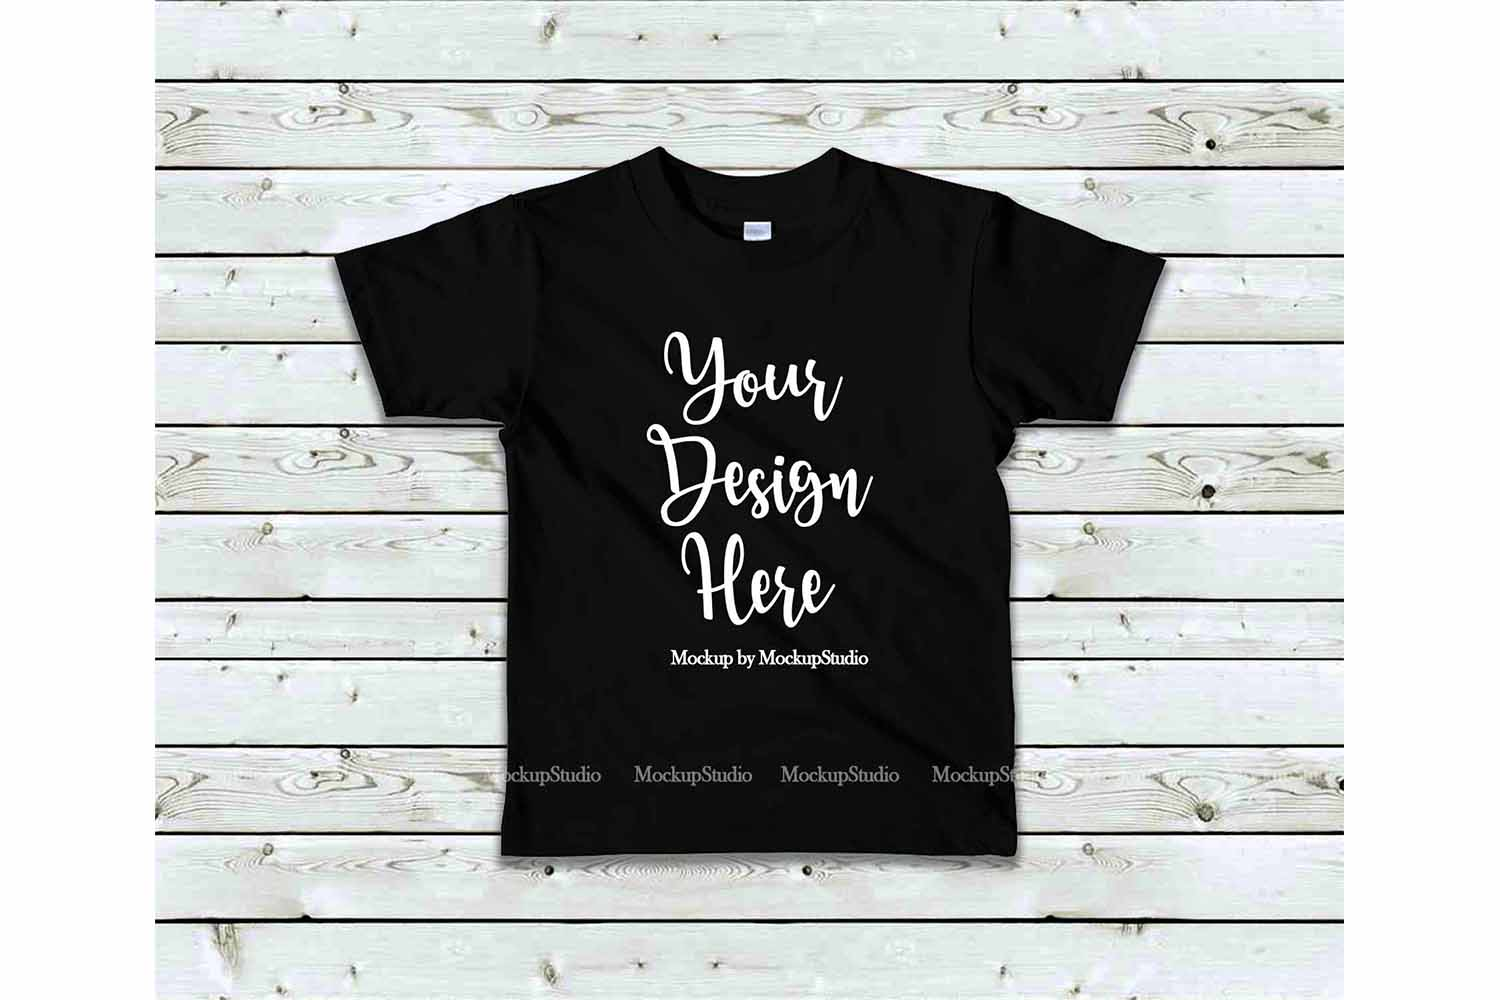 Kids Black Tshirt Mock Up, Toddler Shirt Flat Lay Mockup example image 1